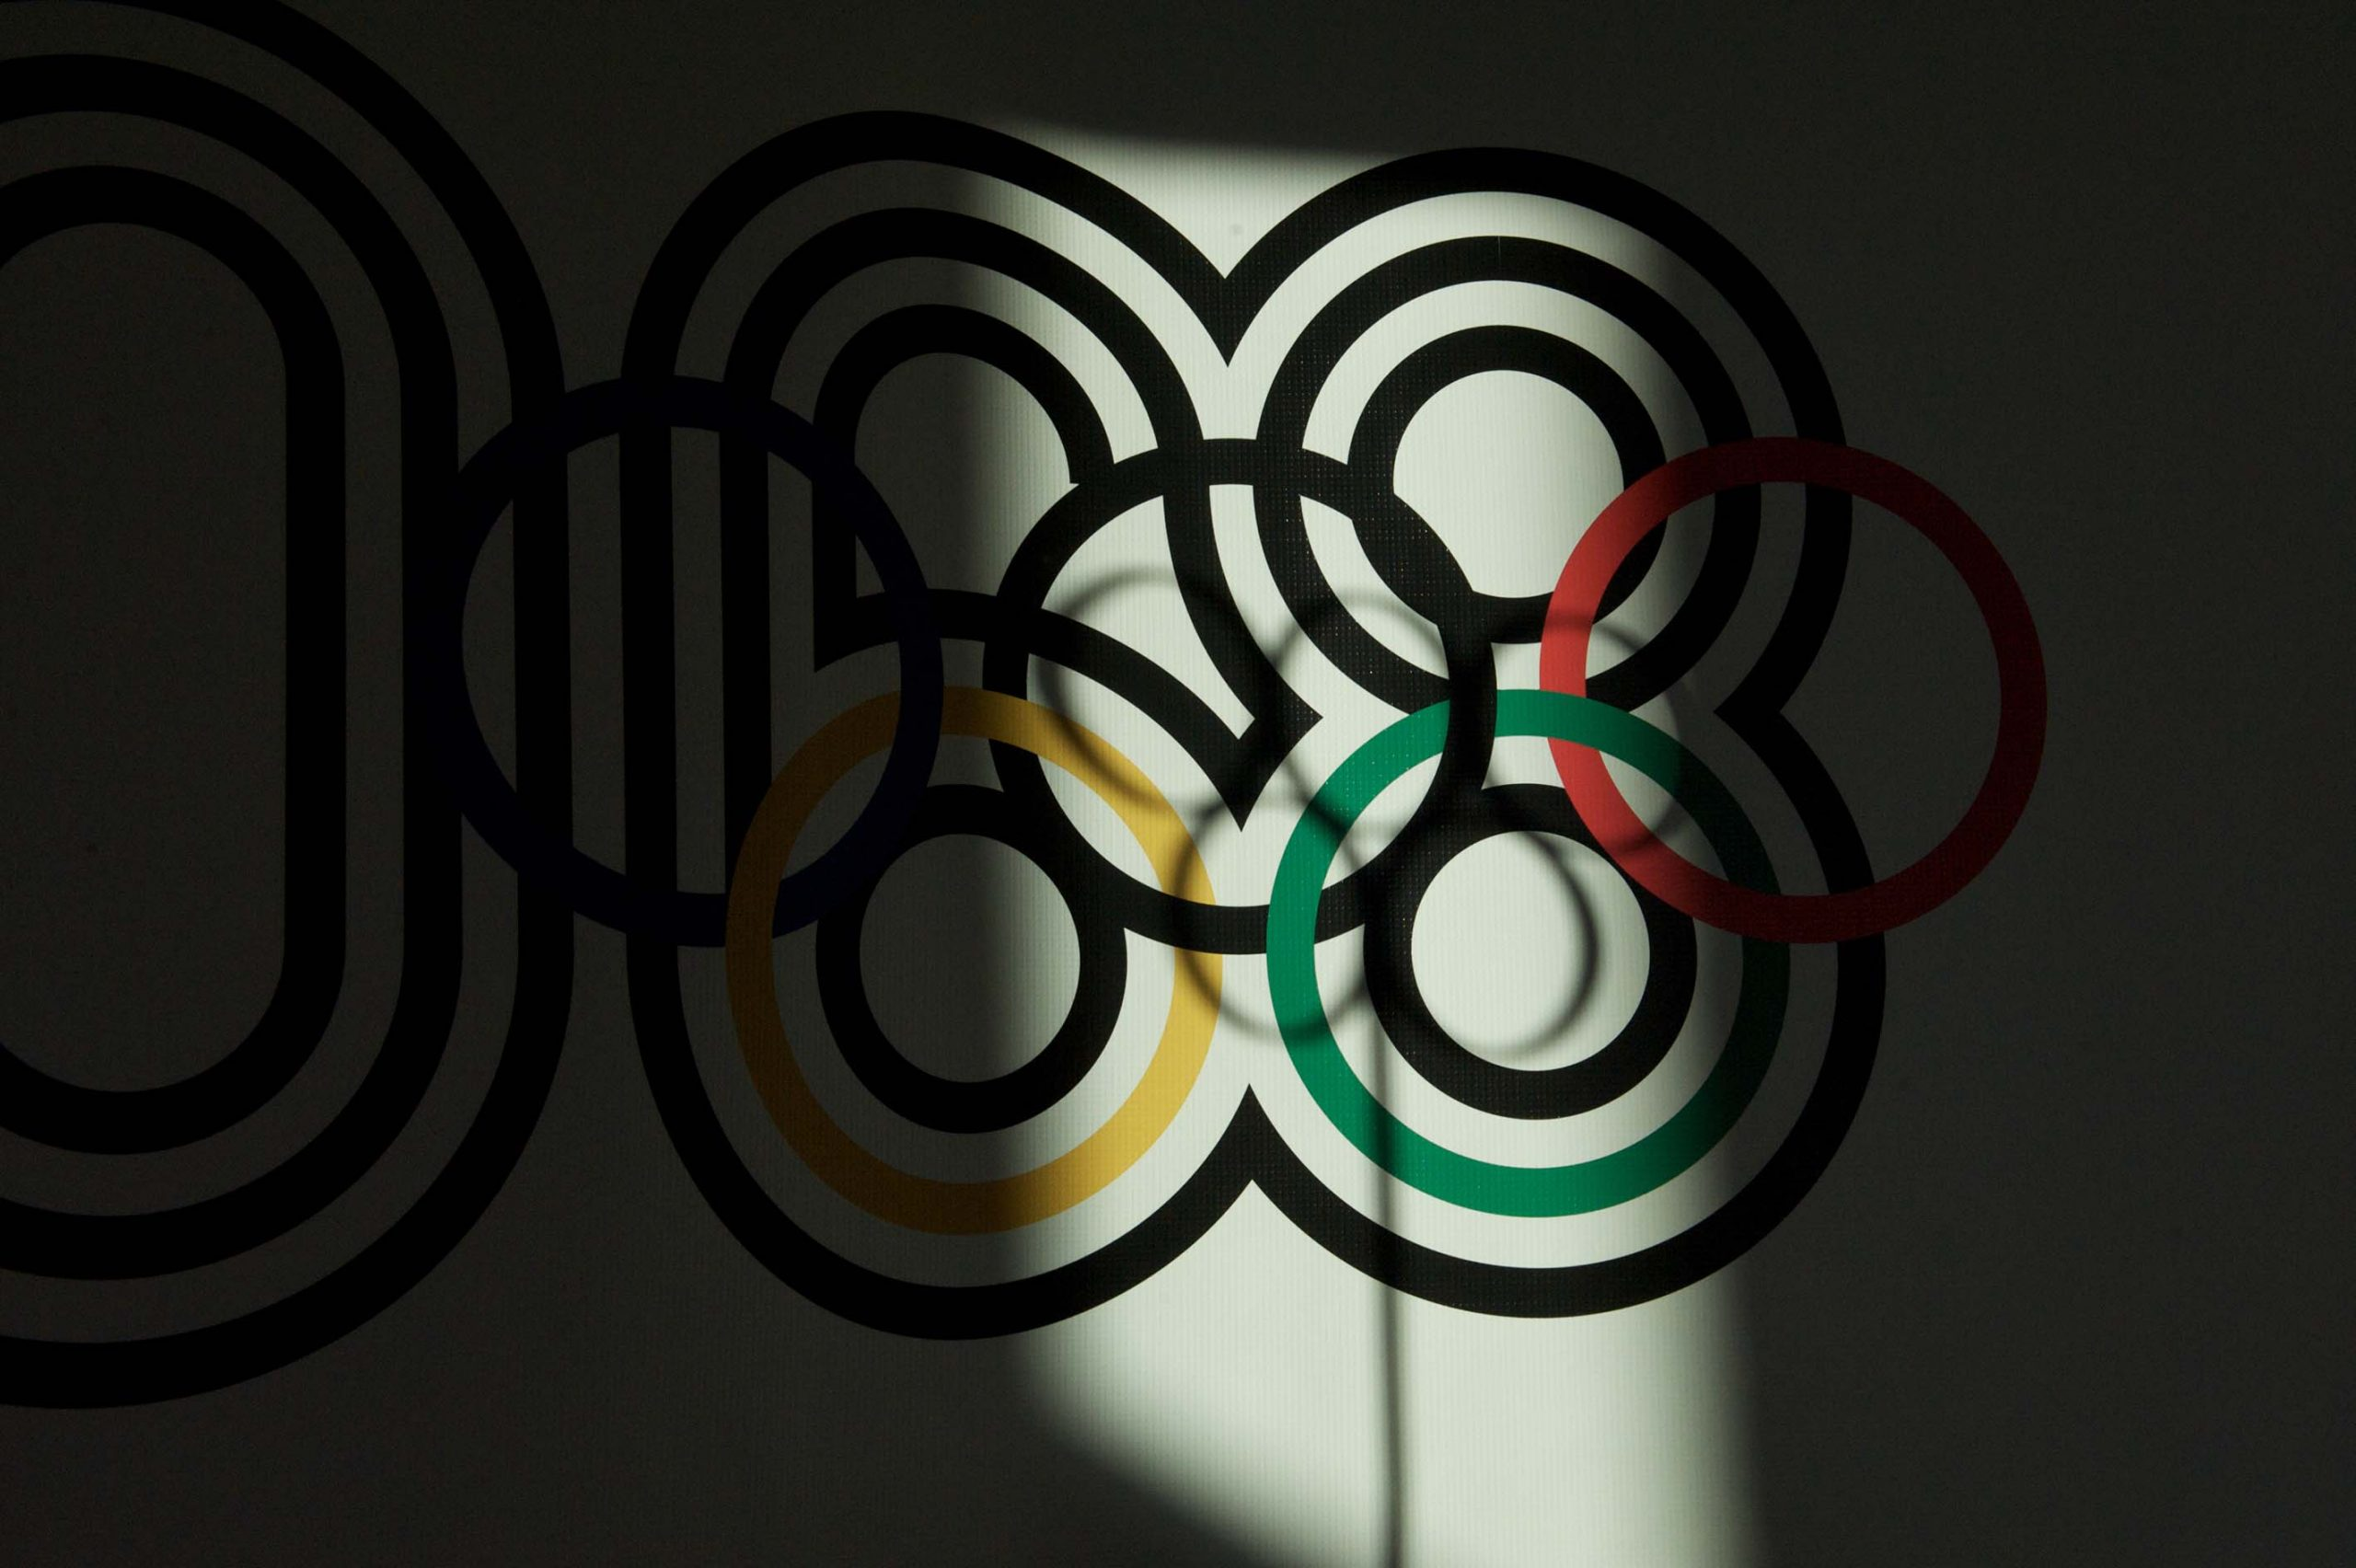 The 1968 Mexico City Summer Olympics logo at the 1968 U.S. Olympic Team 2012 Reunion.